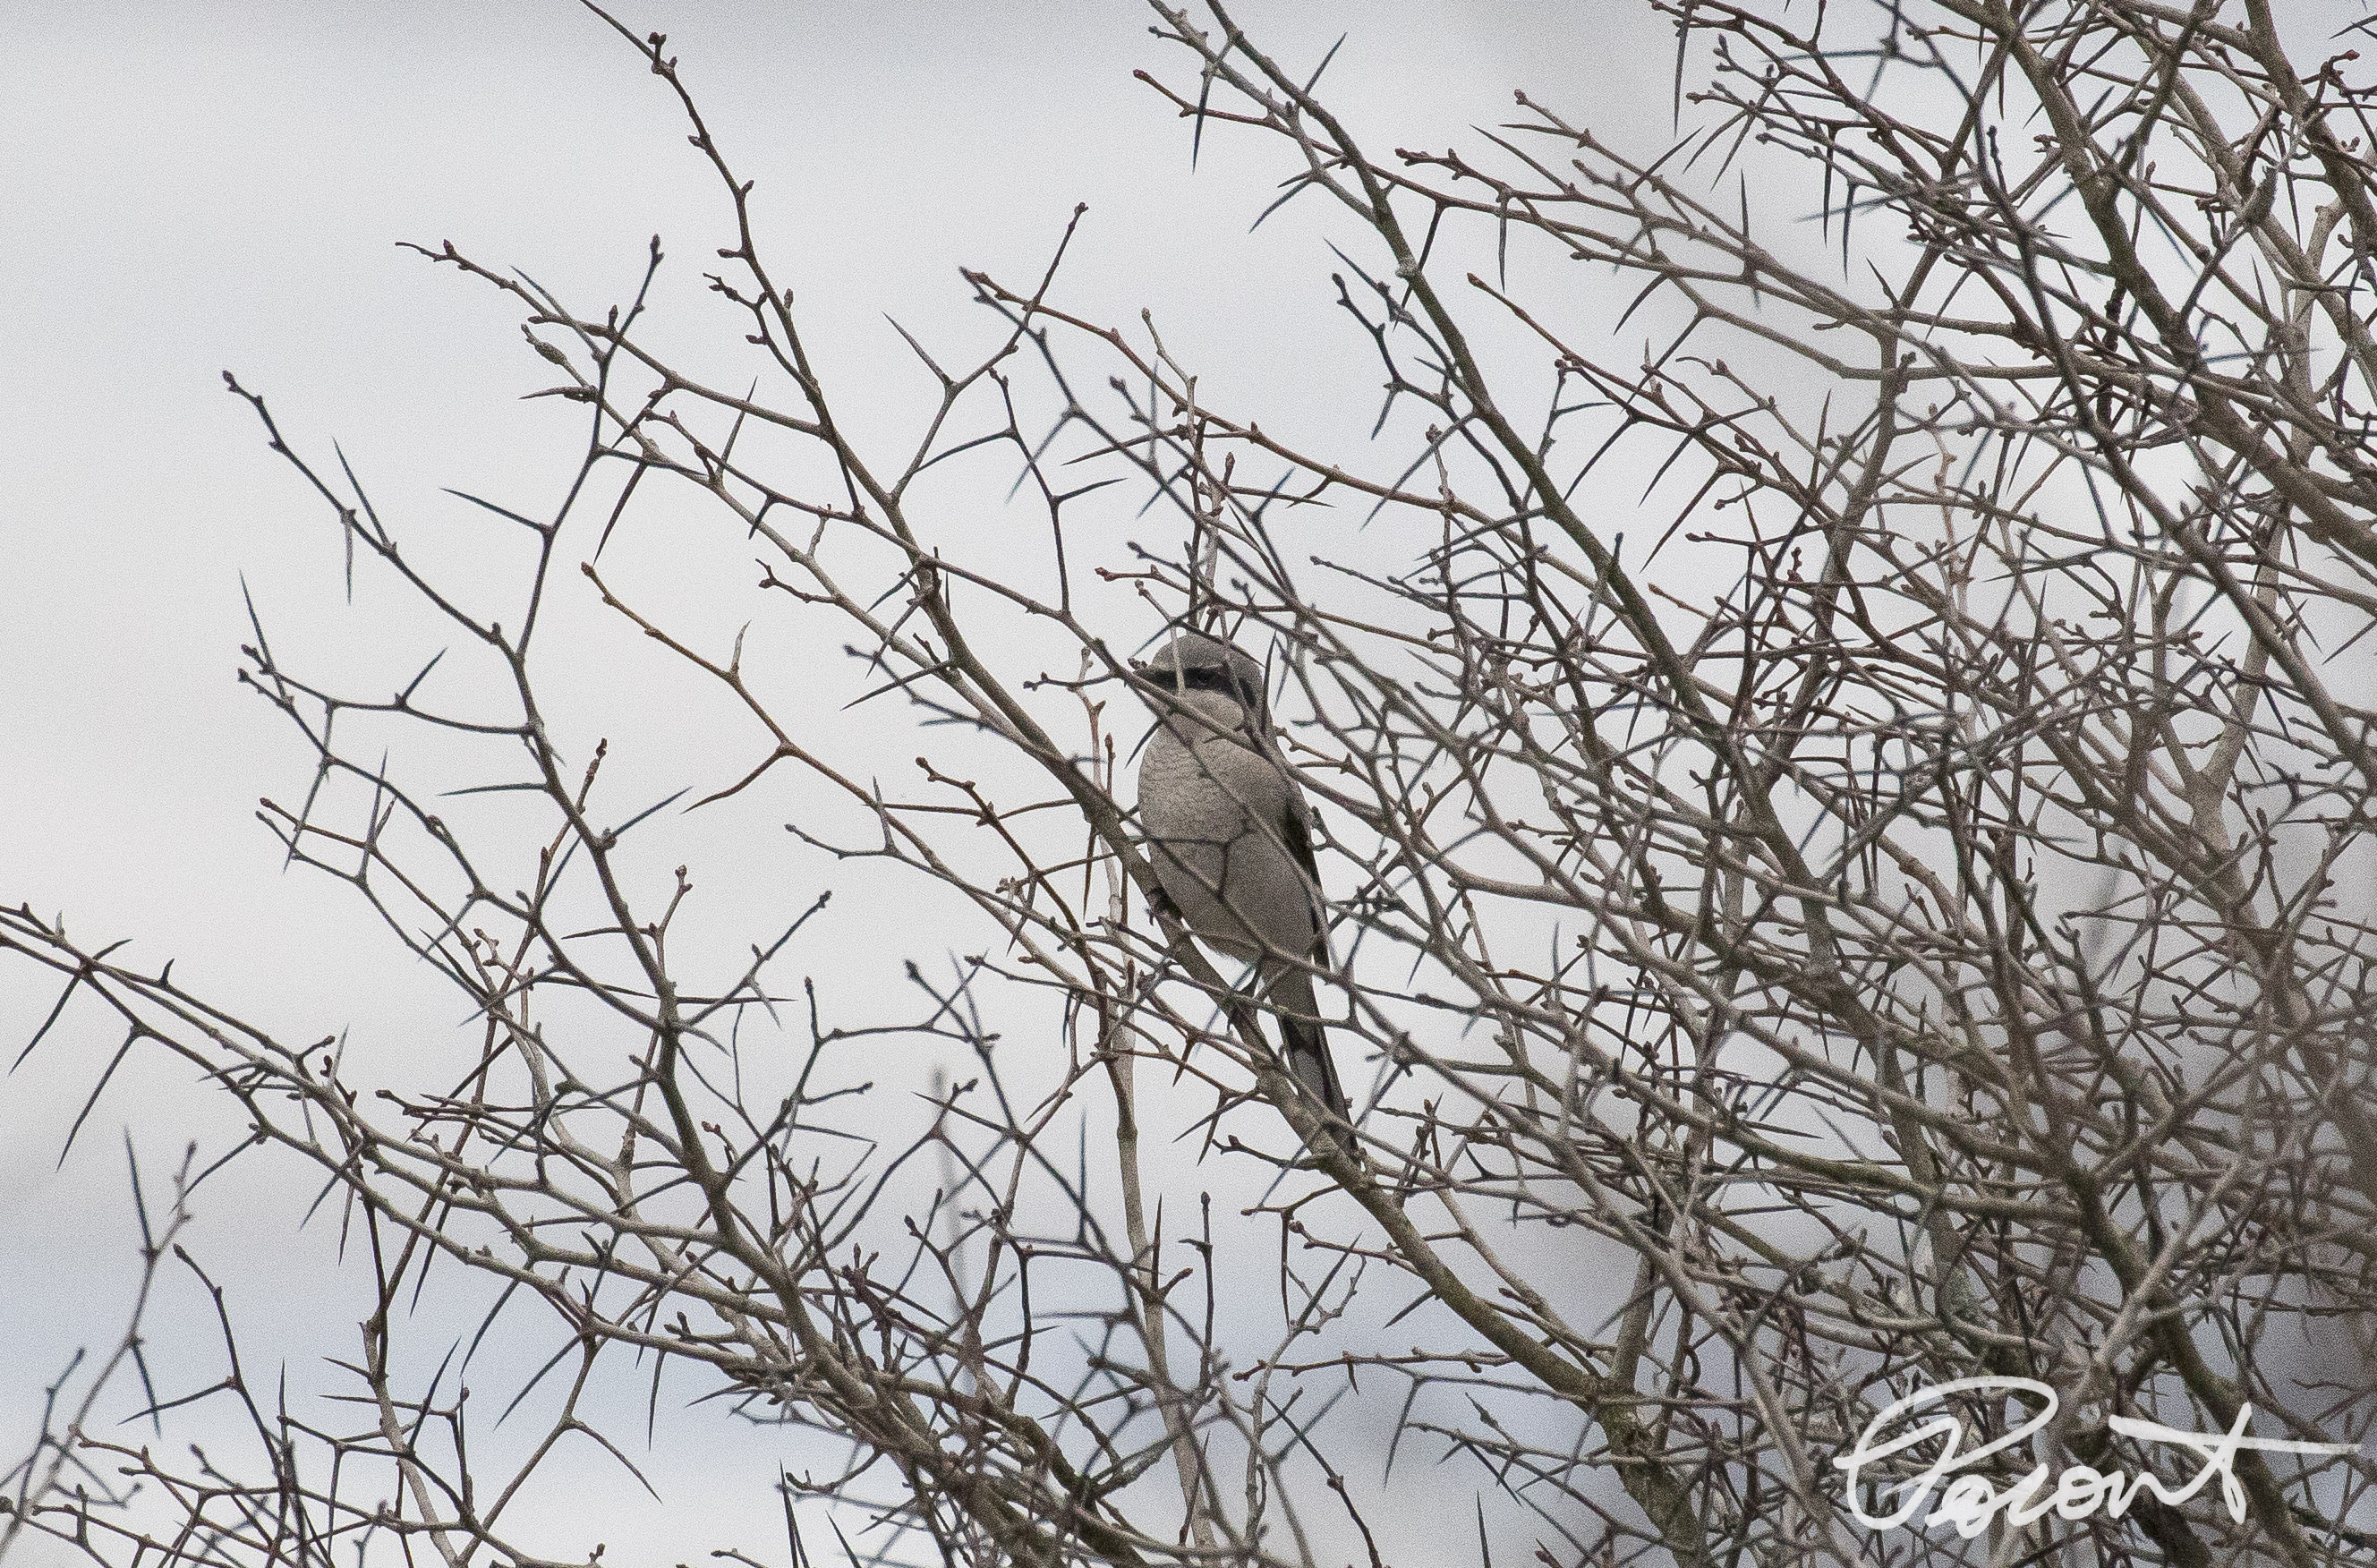 Northern Shrike at dusk